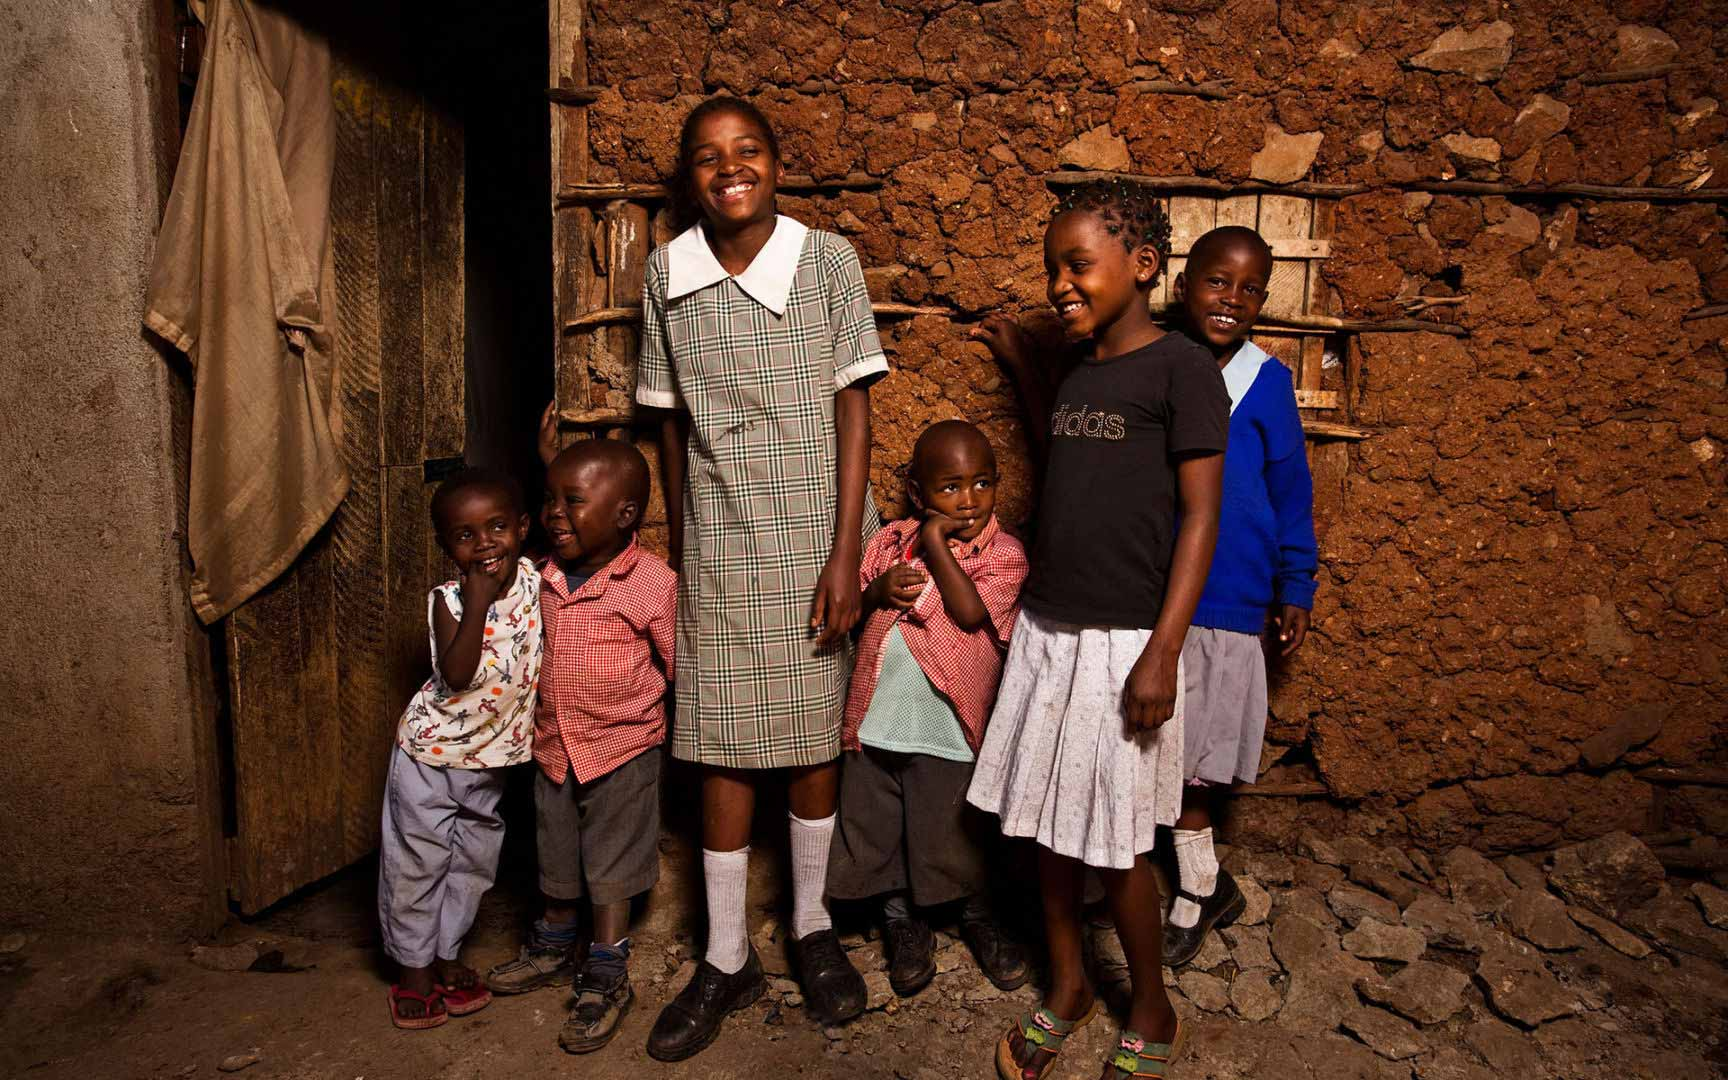 A teenage Kenyan girl and her siblings stand outside their home